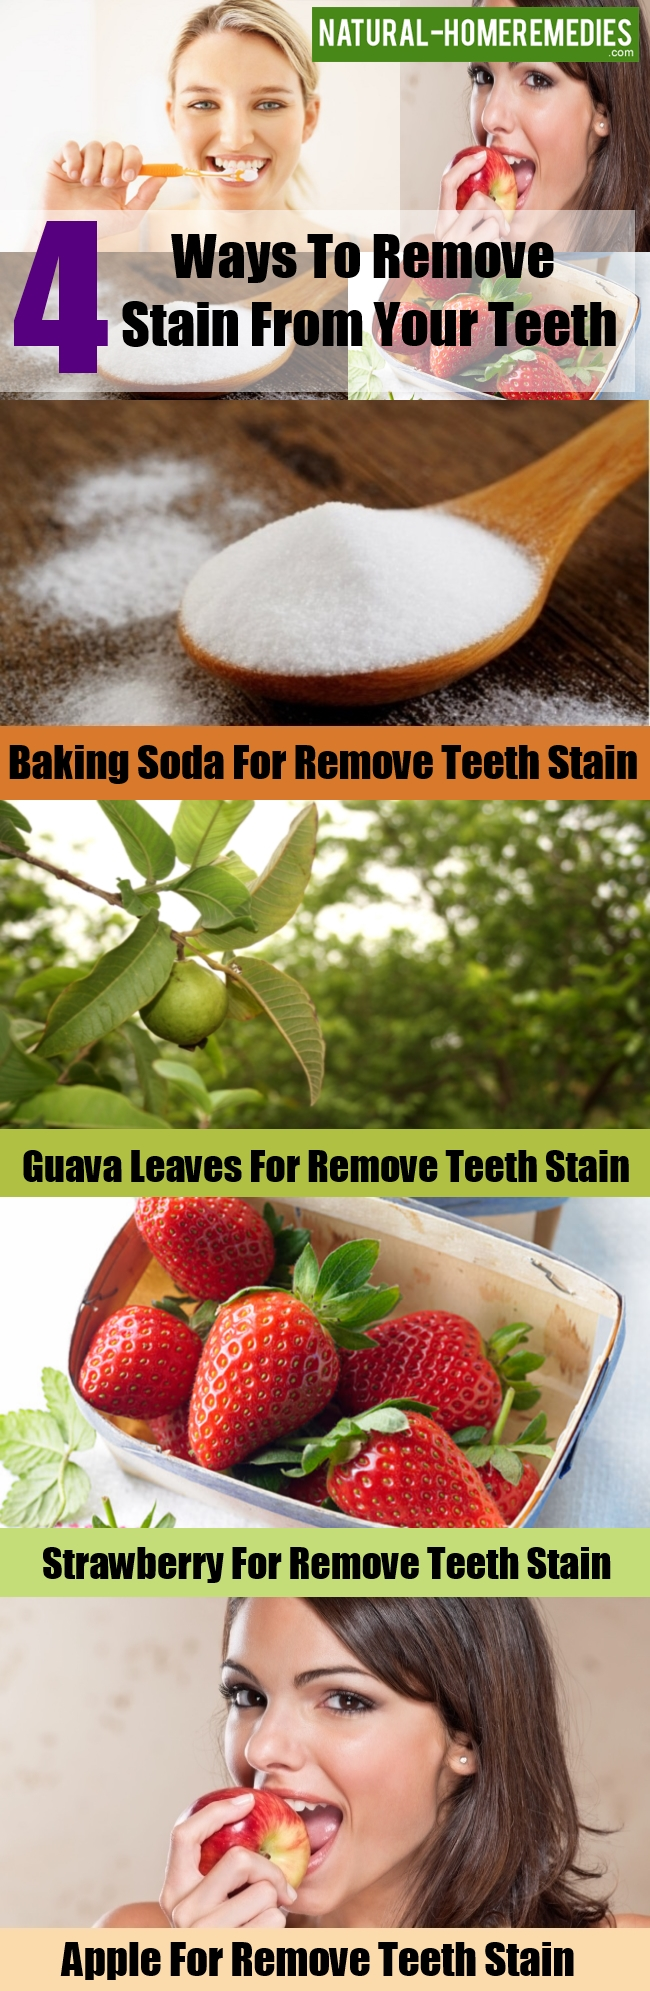 Ways To Remove Stain From Your Teeth